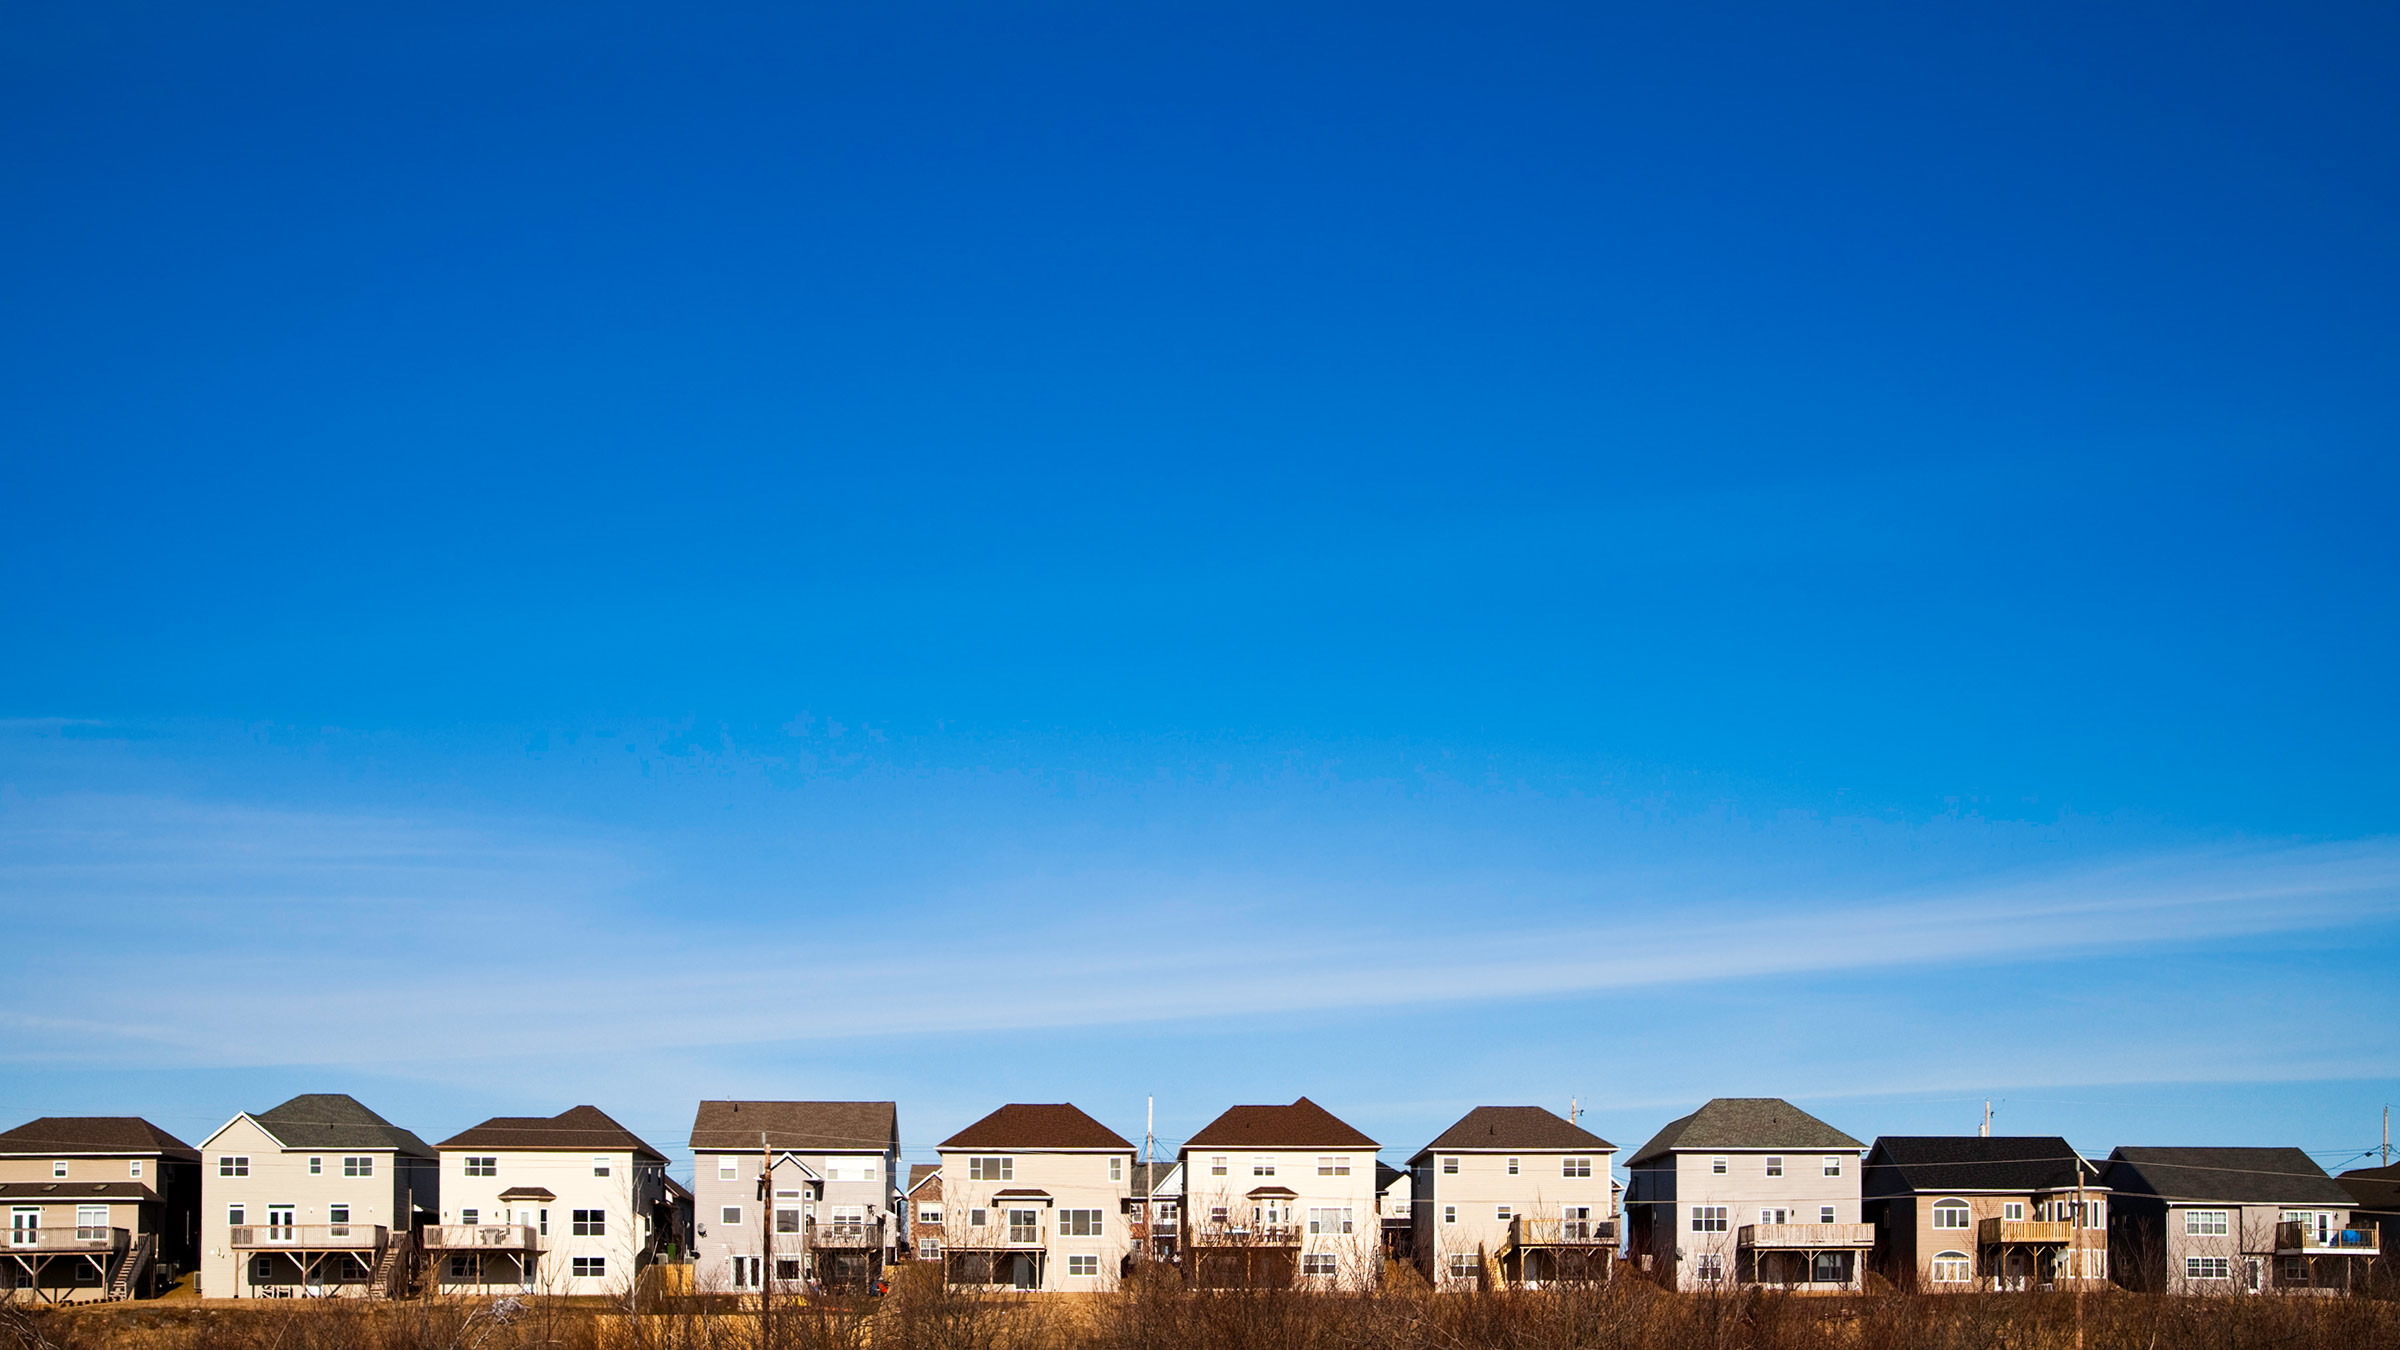 A row of houses beneath the blue sky